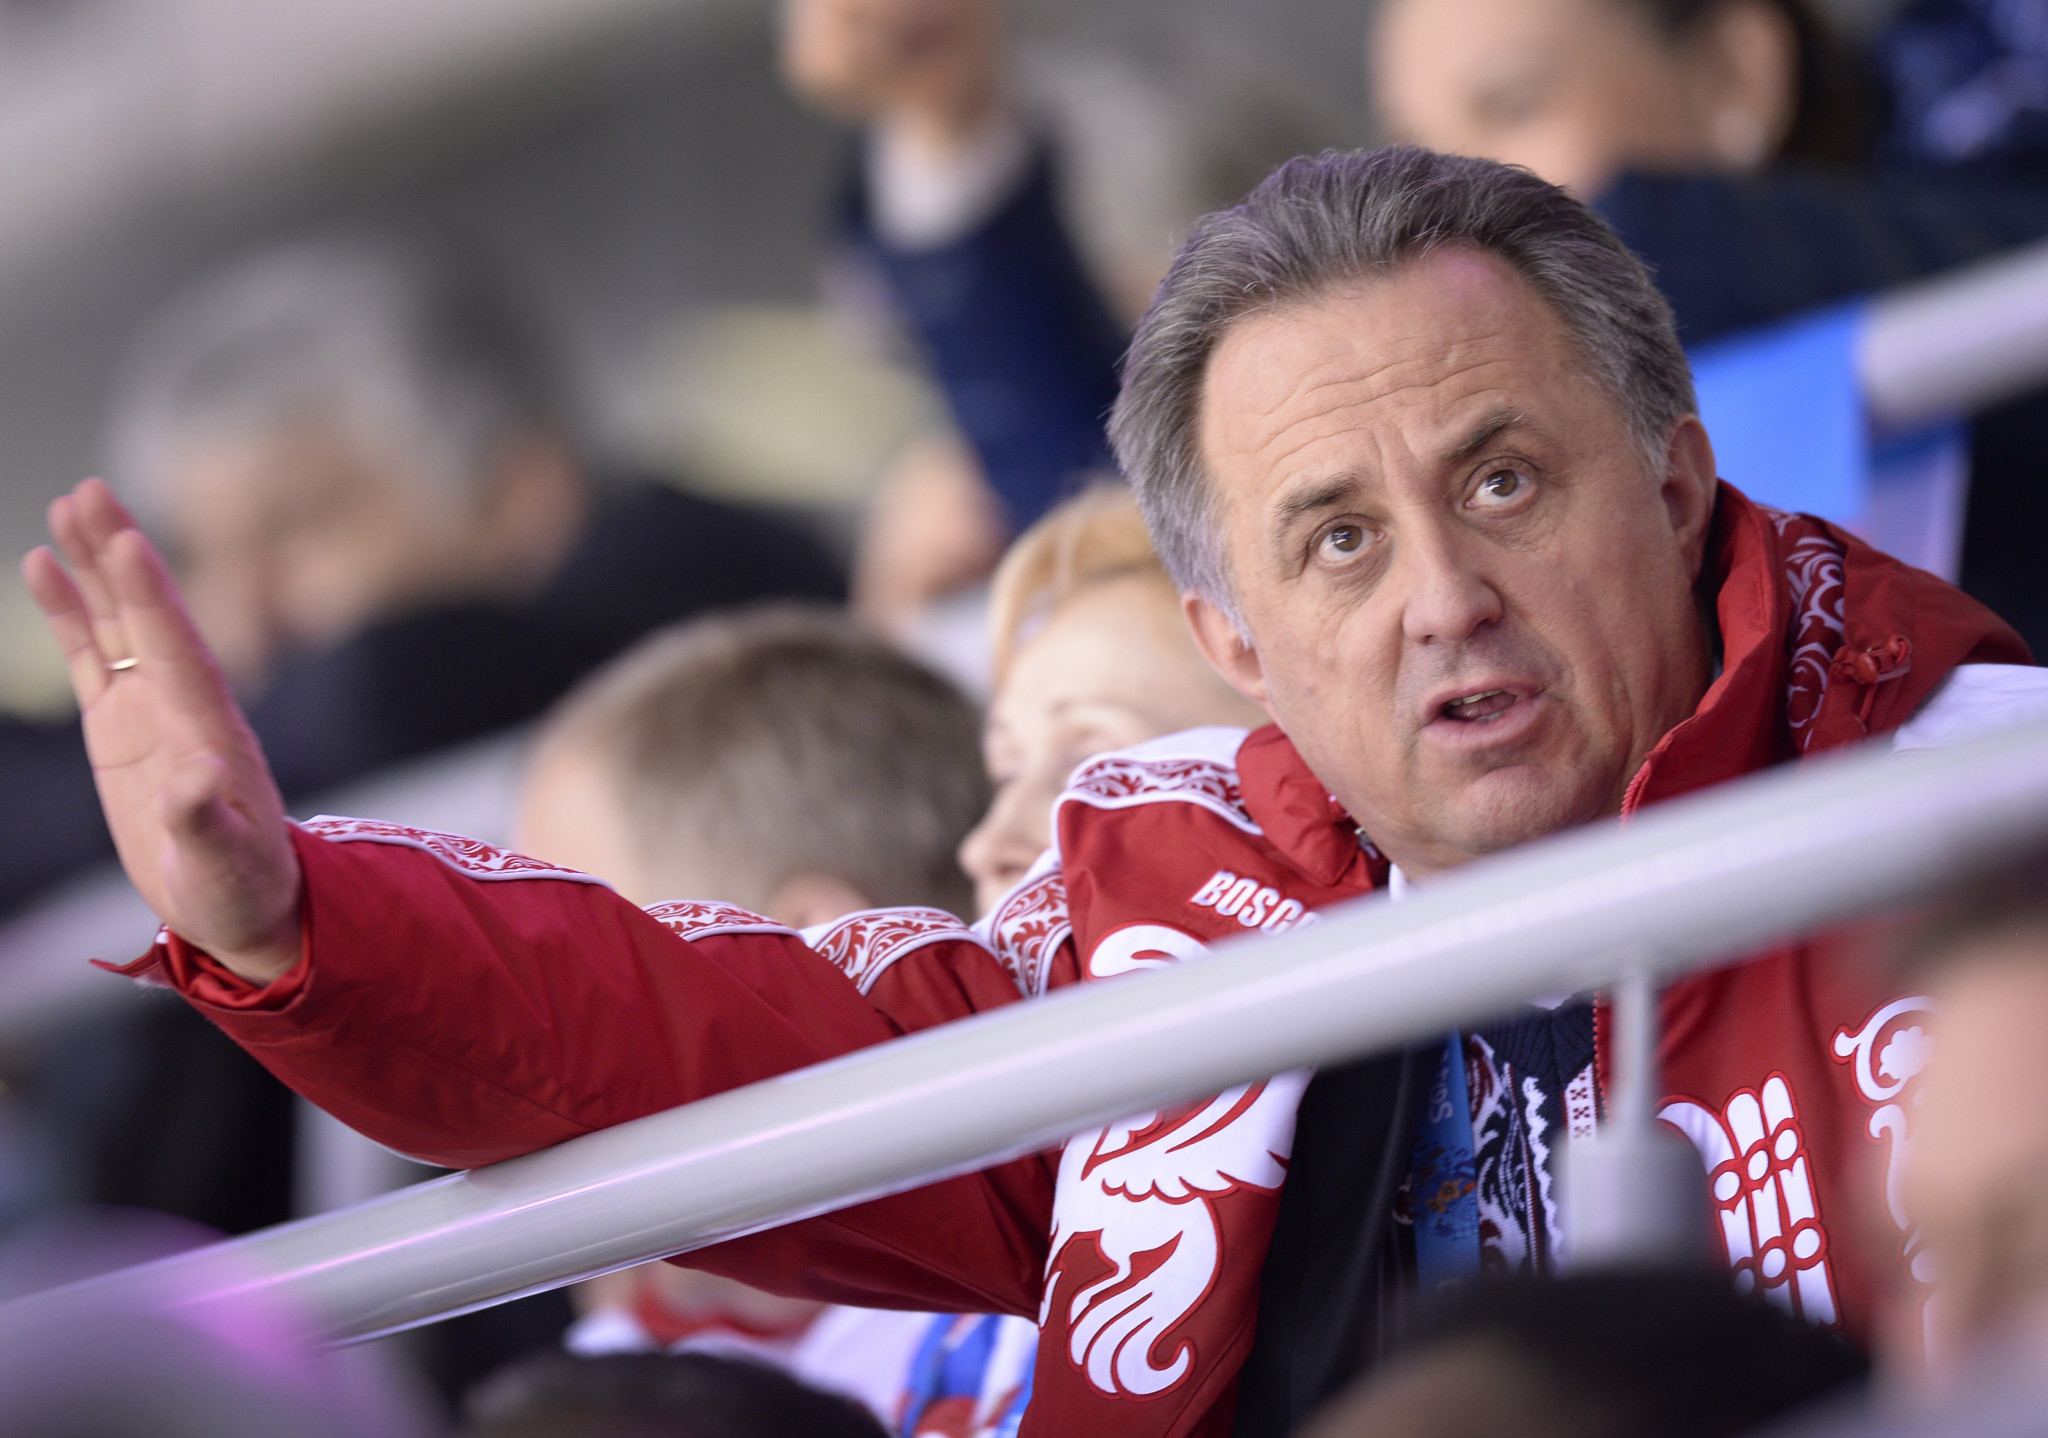 The Vitaly Mutko-headed Sports Ministry is described as the ultimate responsibility ©Getty Images